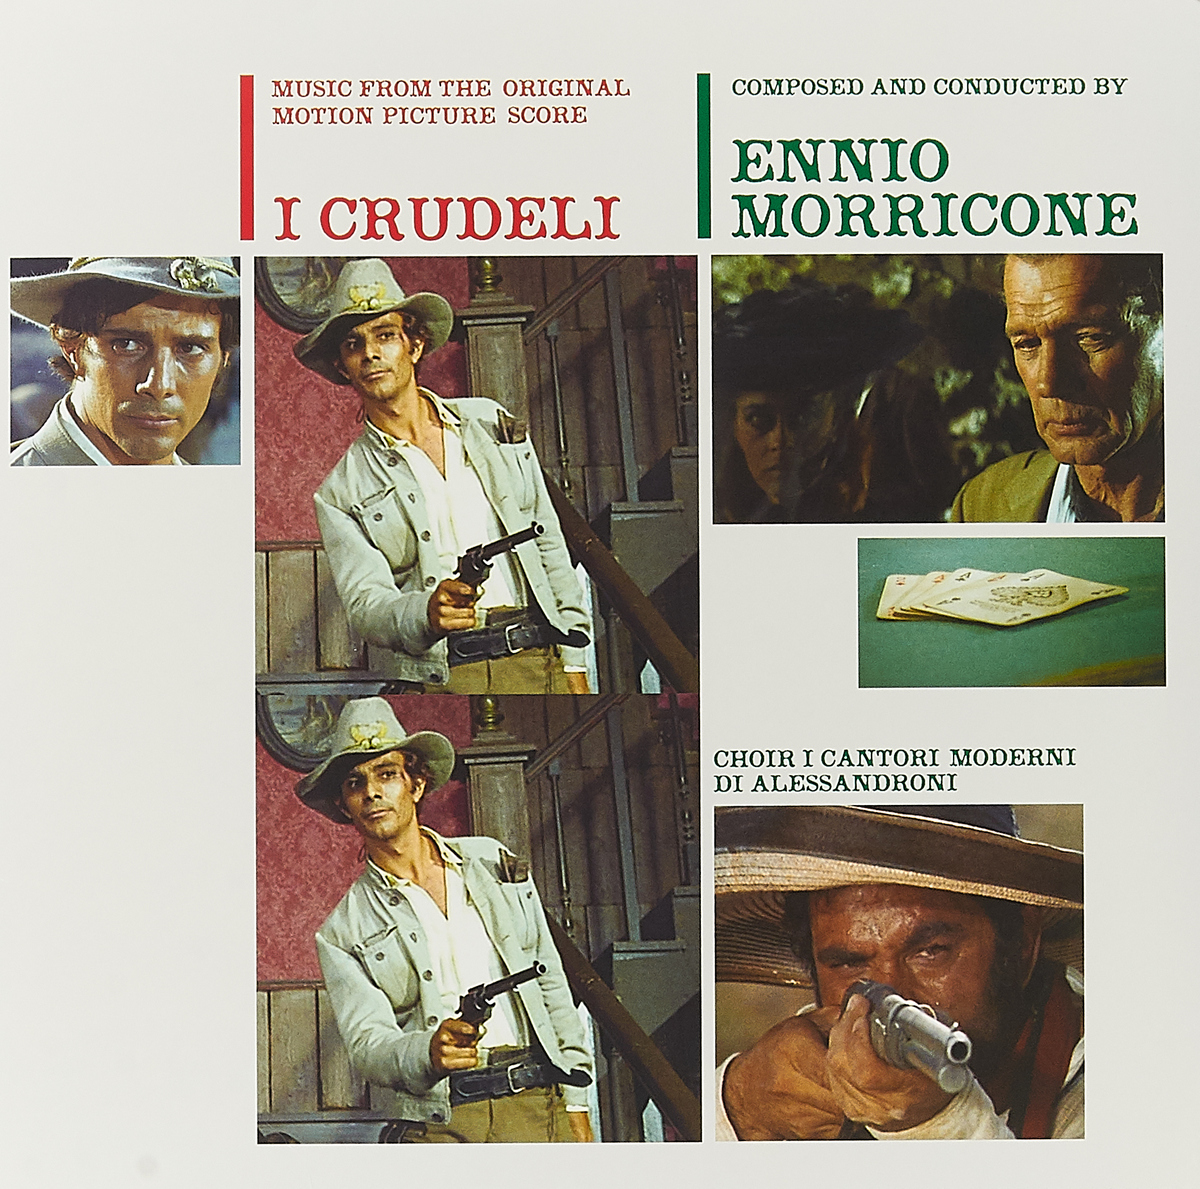 Эннио Морриконе Ennio Morricone. I Crudeli (Music From The Original Motion Picture Score) (LP) эннио морриконе ennio morricone the mission original soundtrack lp